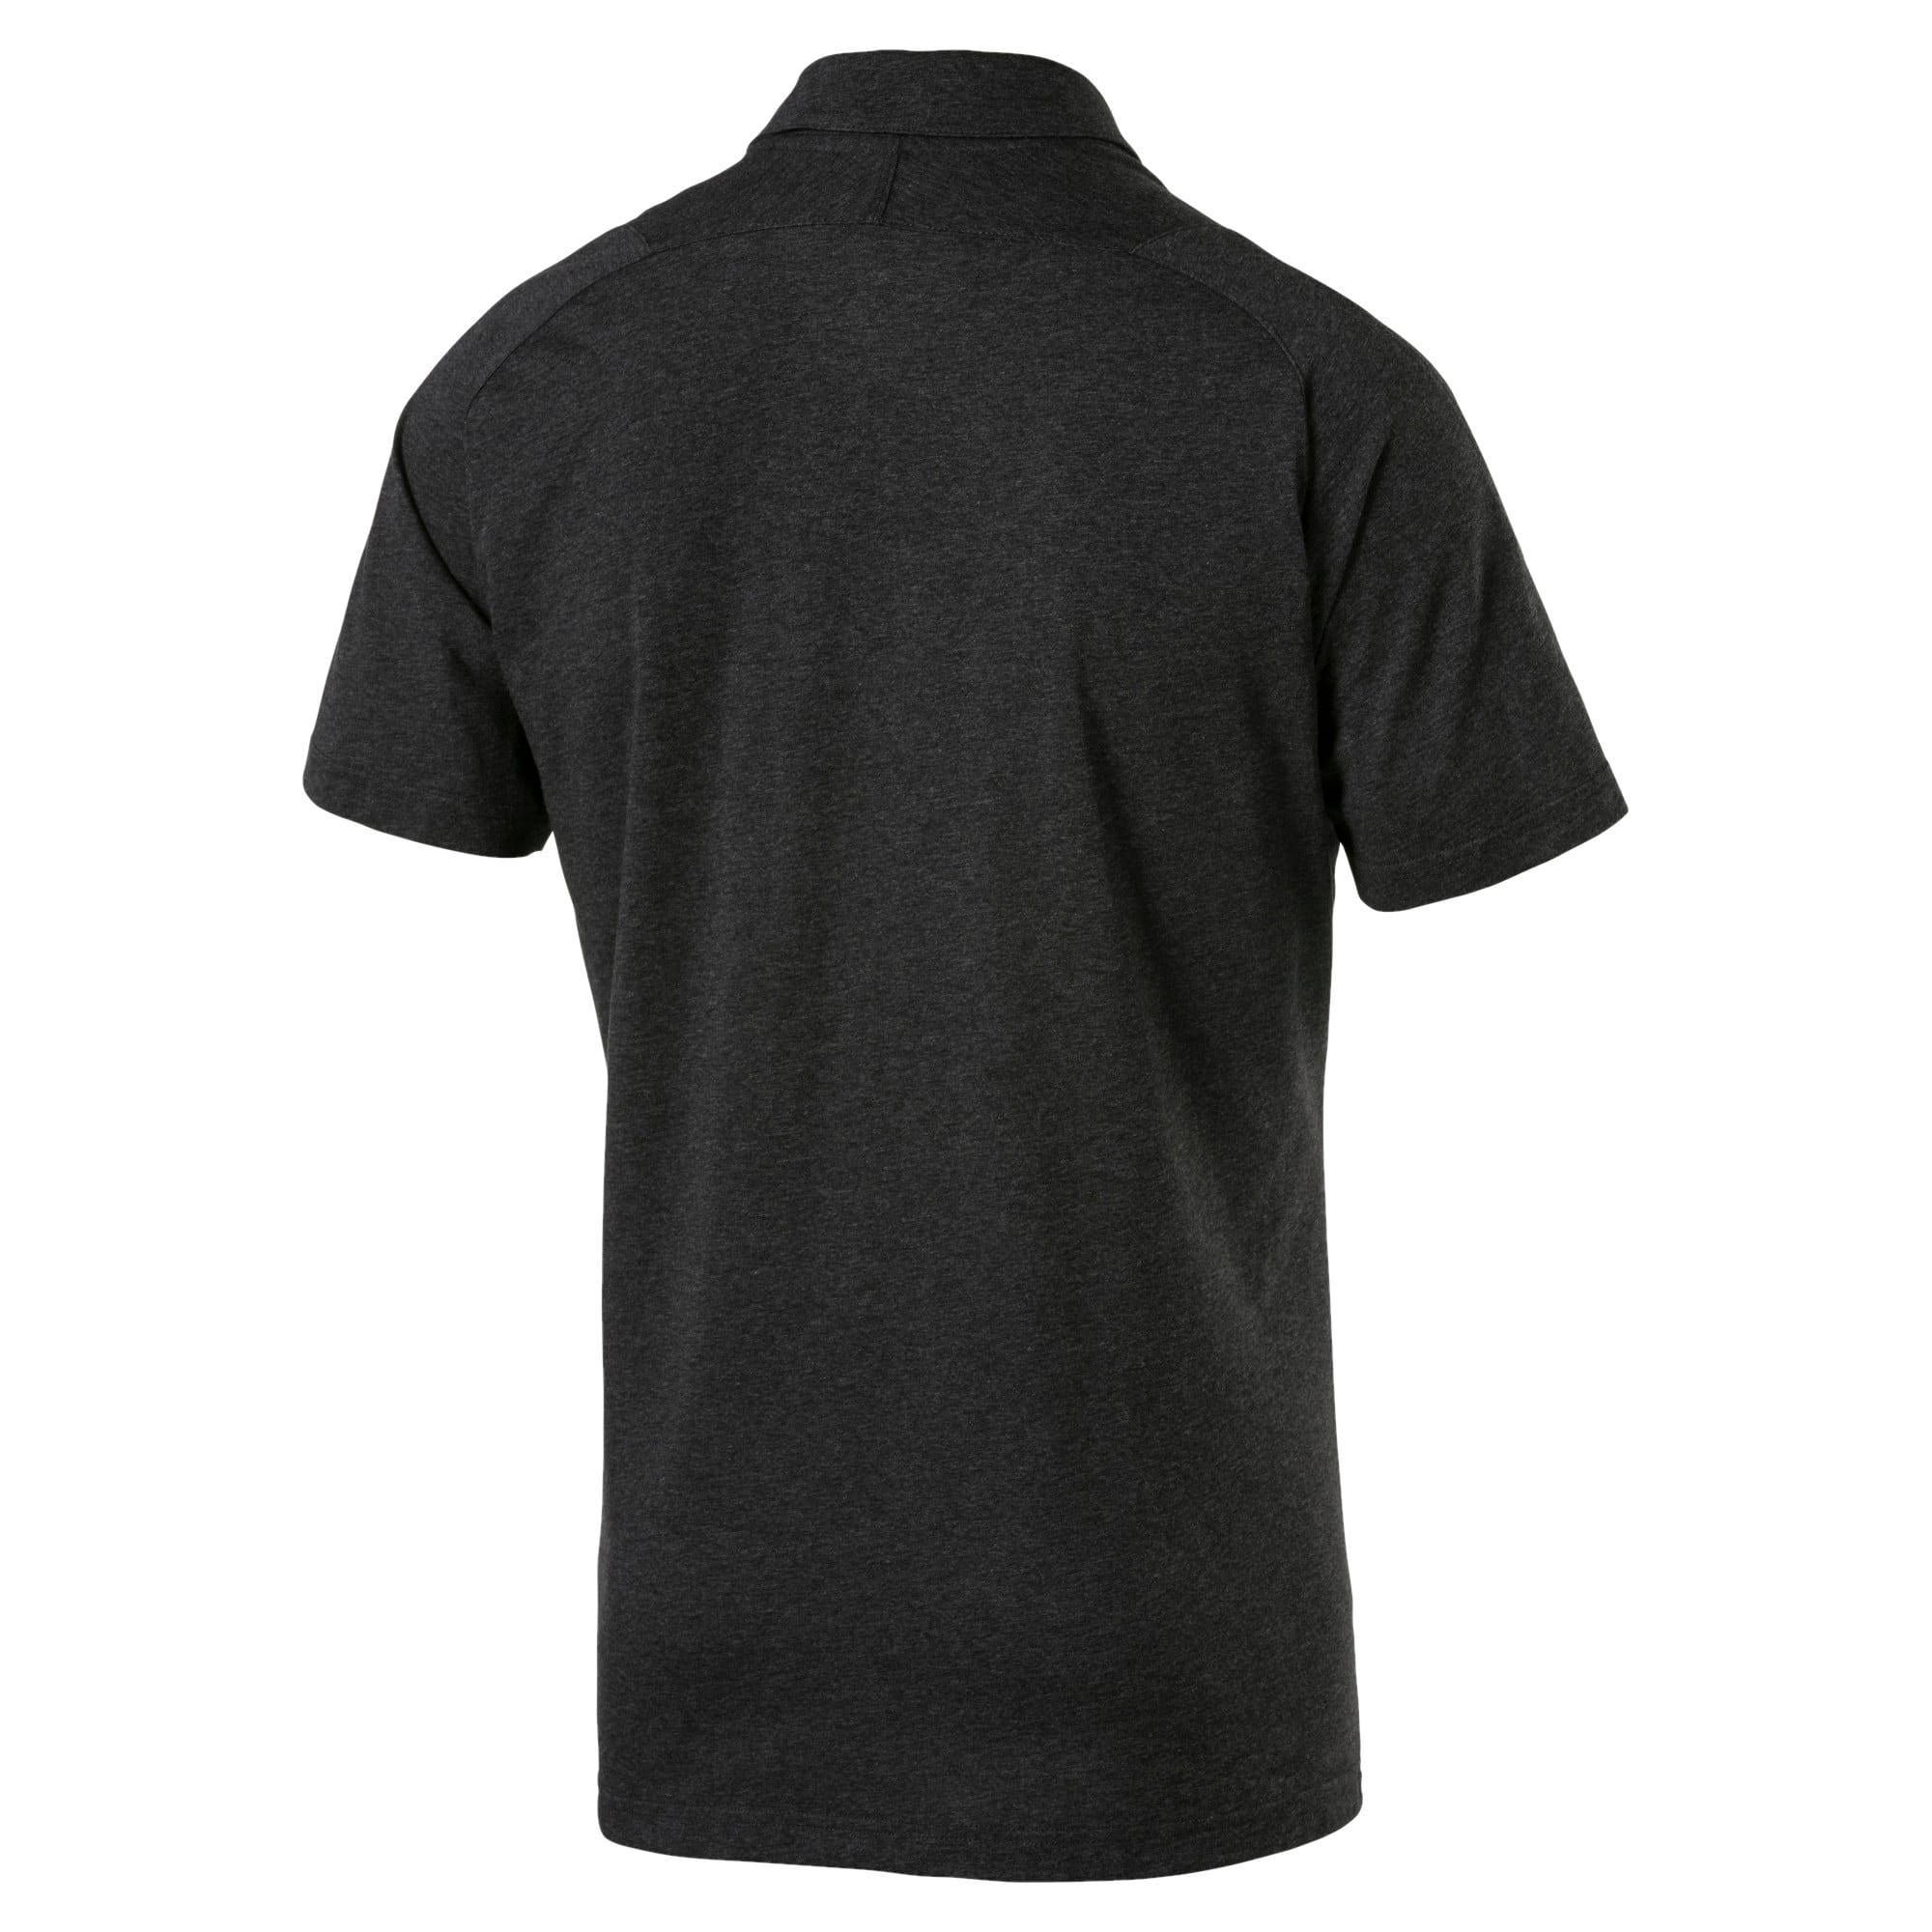 Thumbnail 4 of BVB Casual Polo without Sponsor Logo Pum, Dark Gray Heather, medium-IND